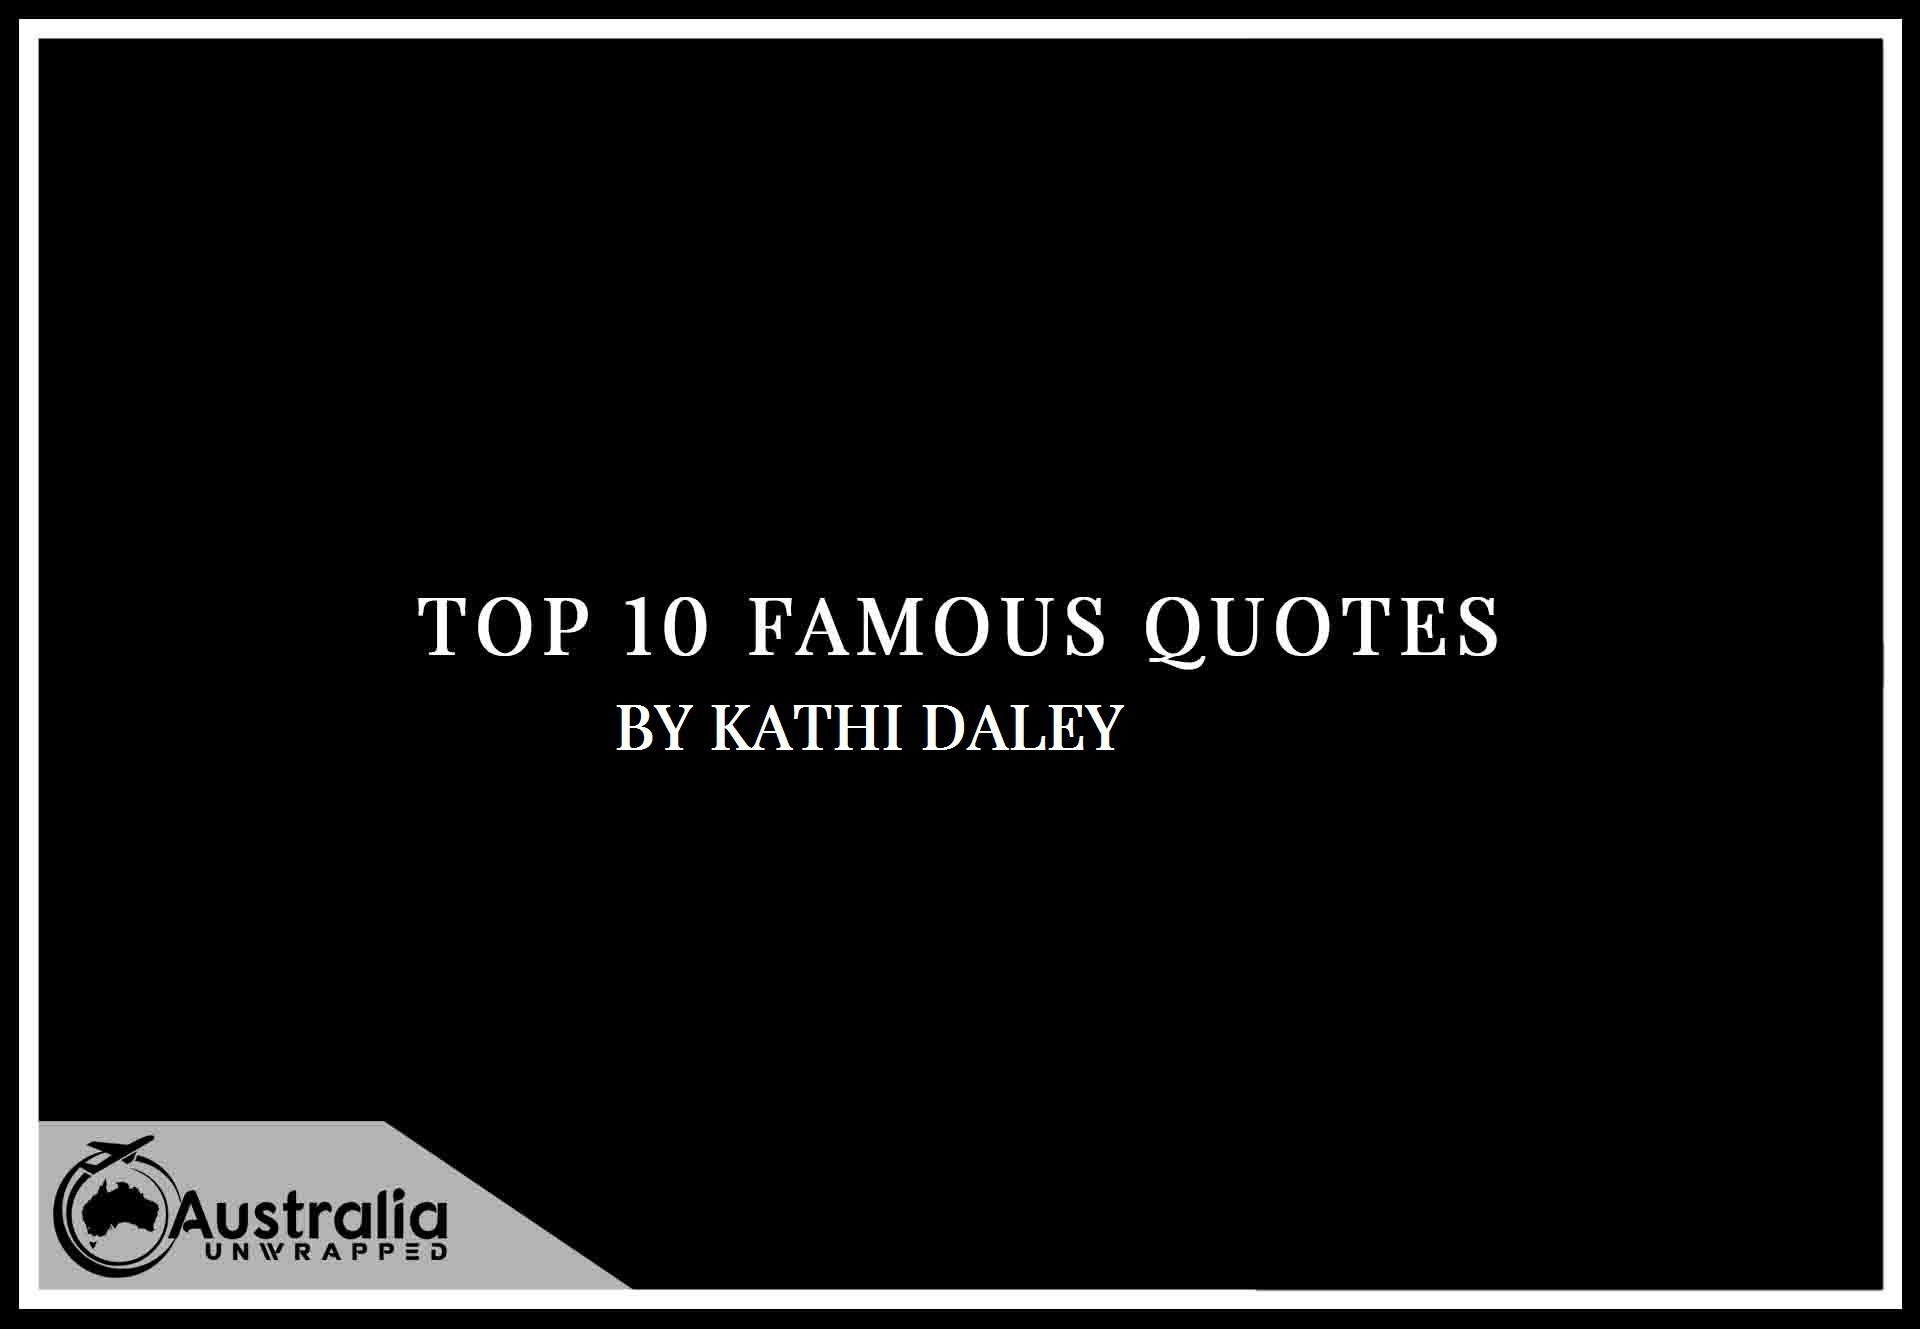 Kathi Daley's Top 10 Popular and Famous Quotes